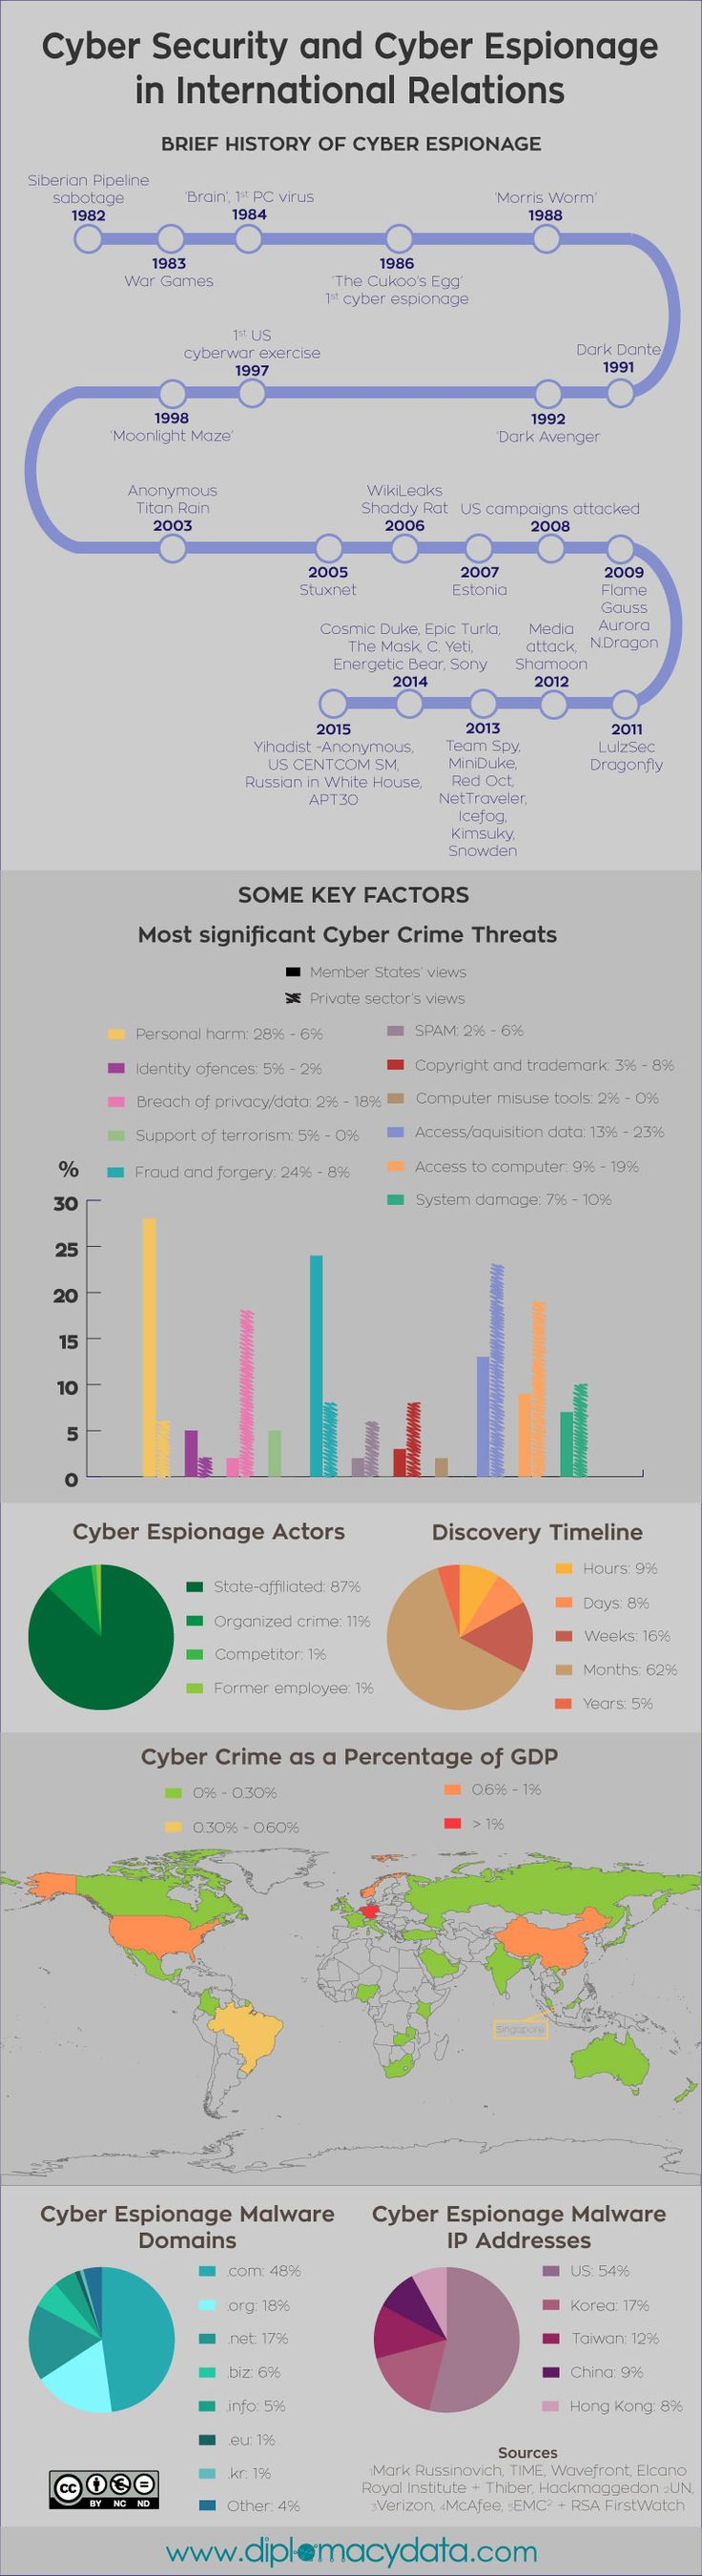 Cyber Security and Cyber Espionage in International Relations - diplomacy data